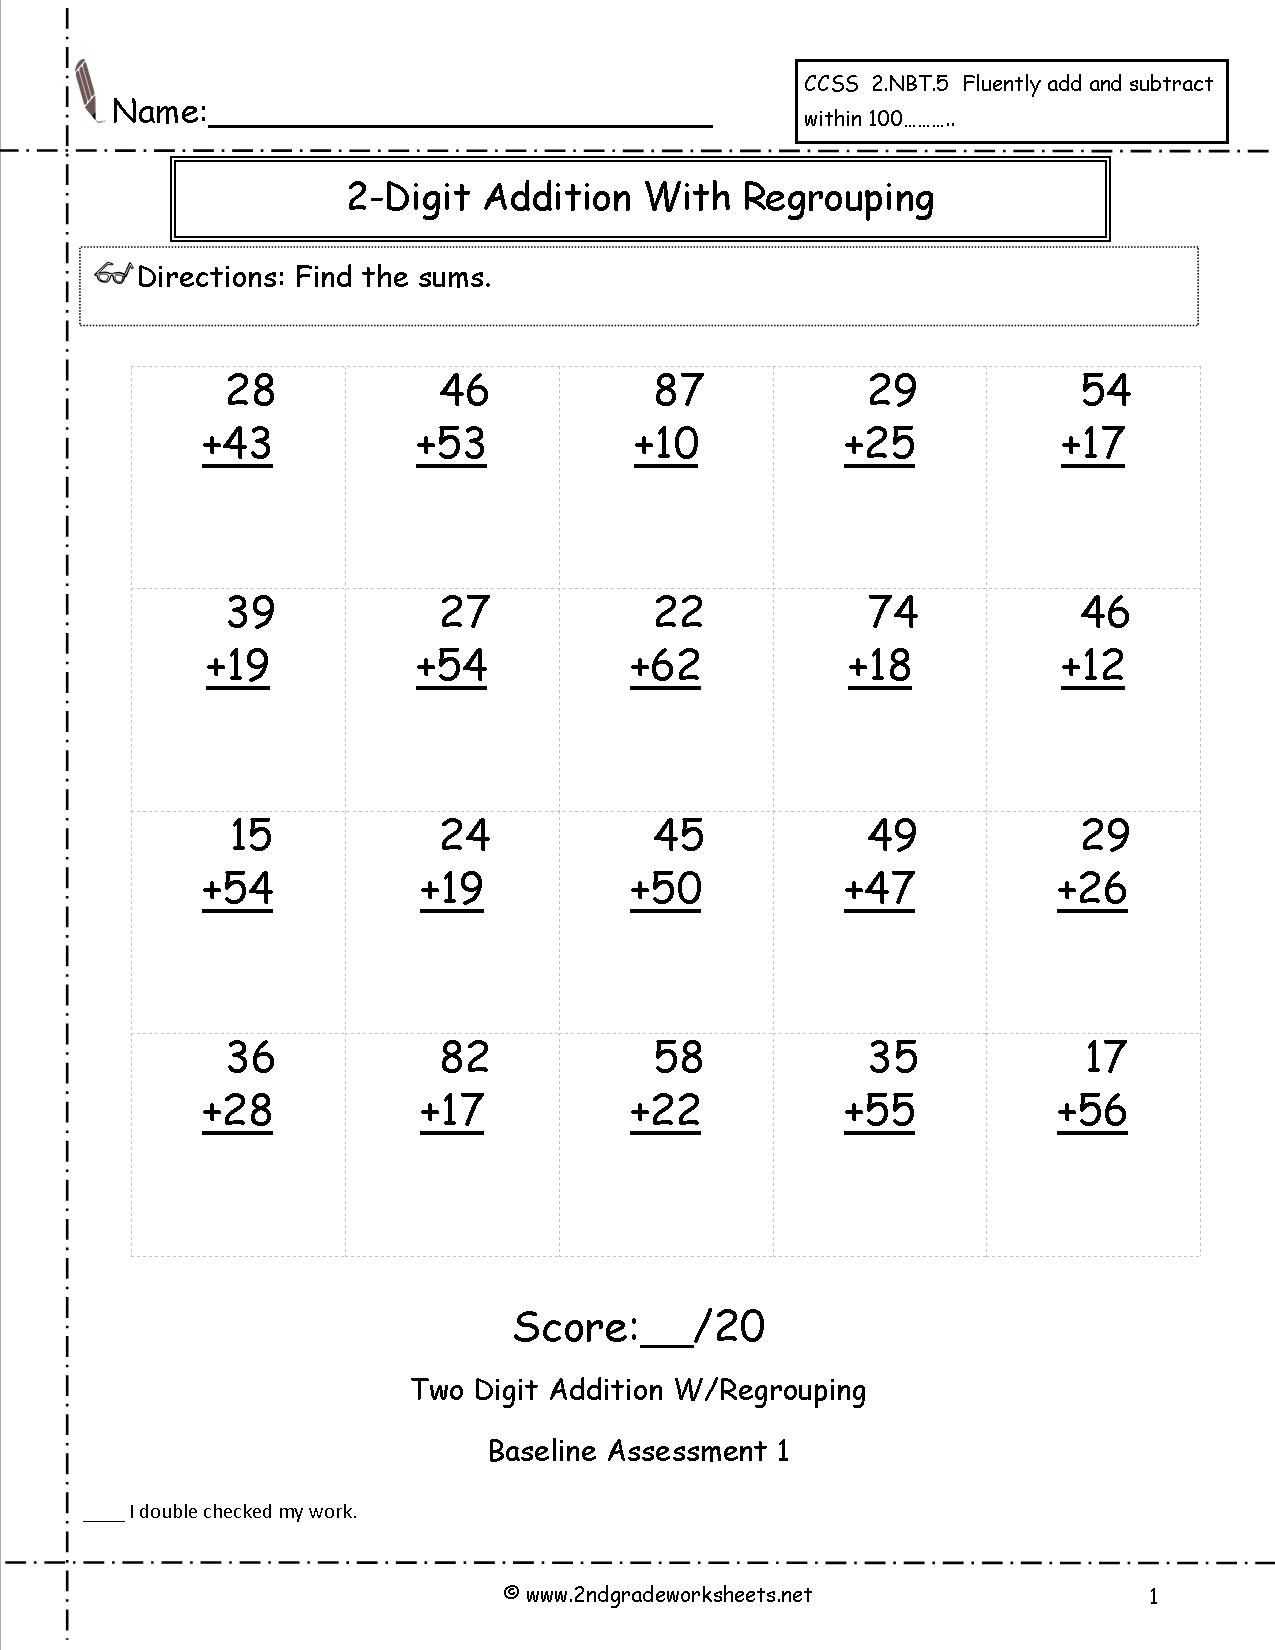 Two Digit Addition With Regrouping Assessment | Love To Learn - Free Printable Two Digit Addition Worksheets